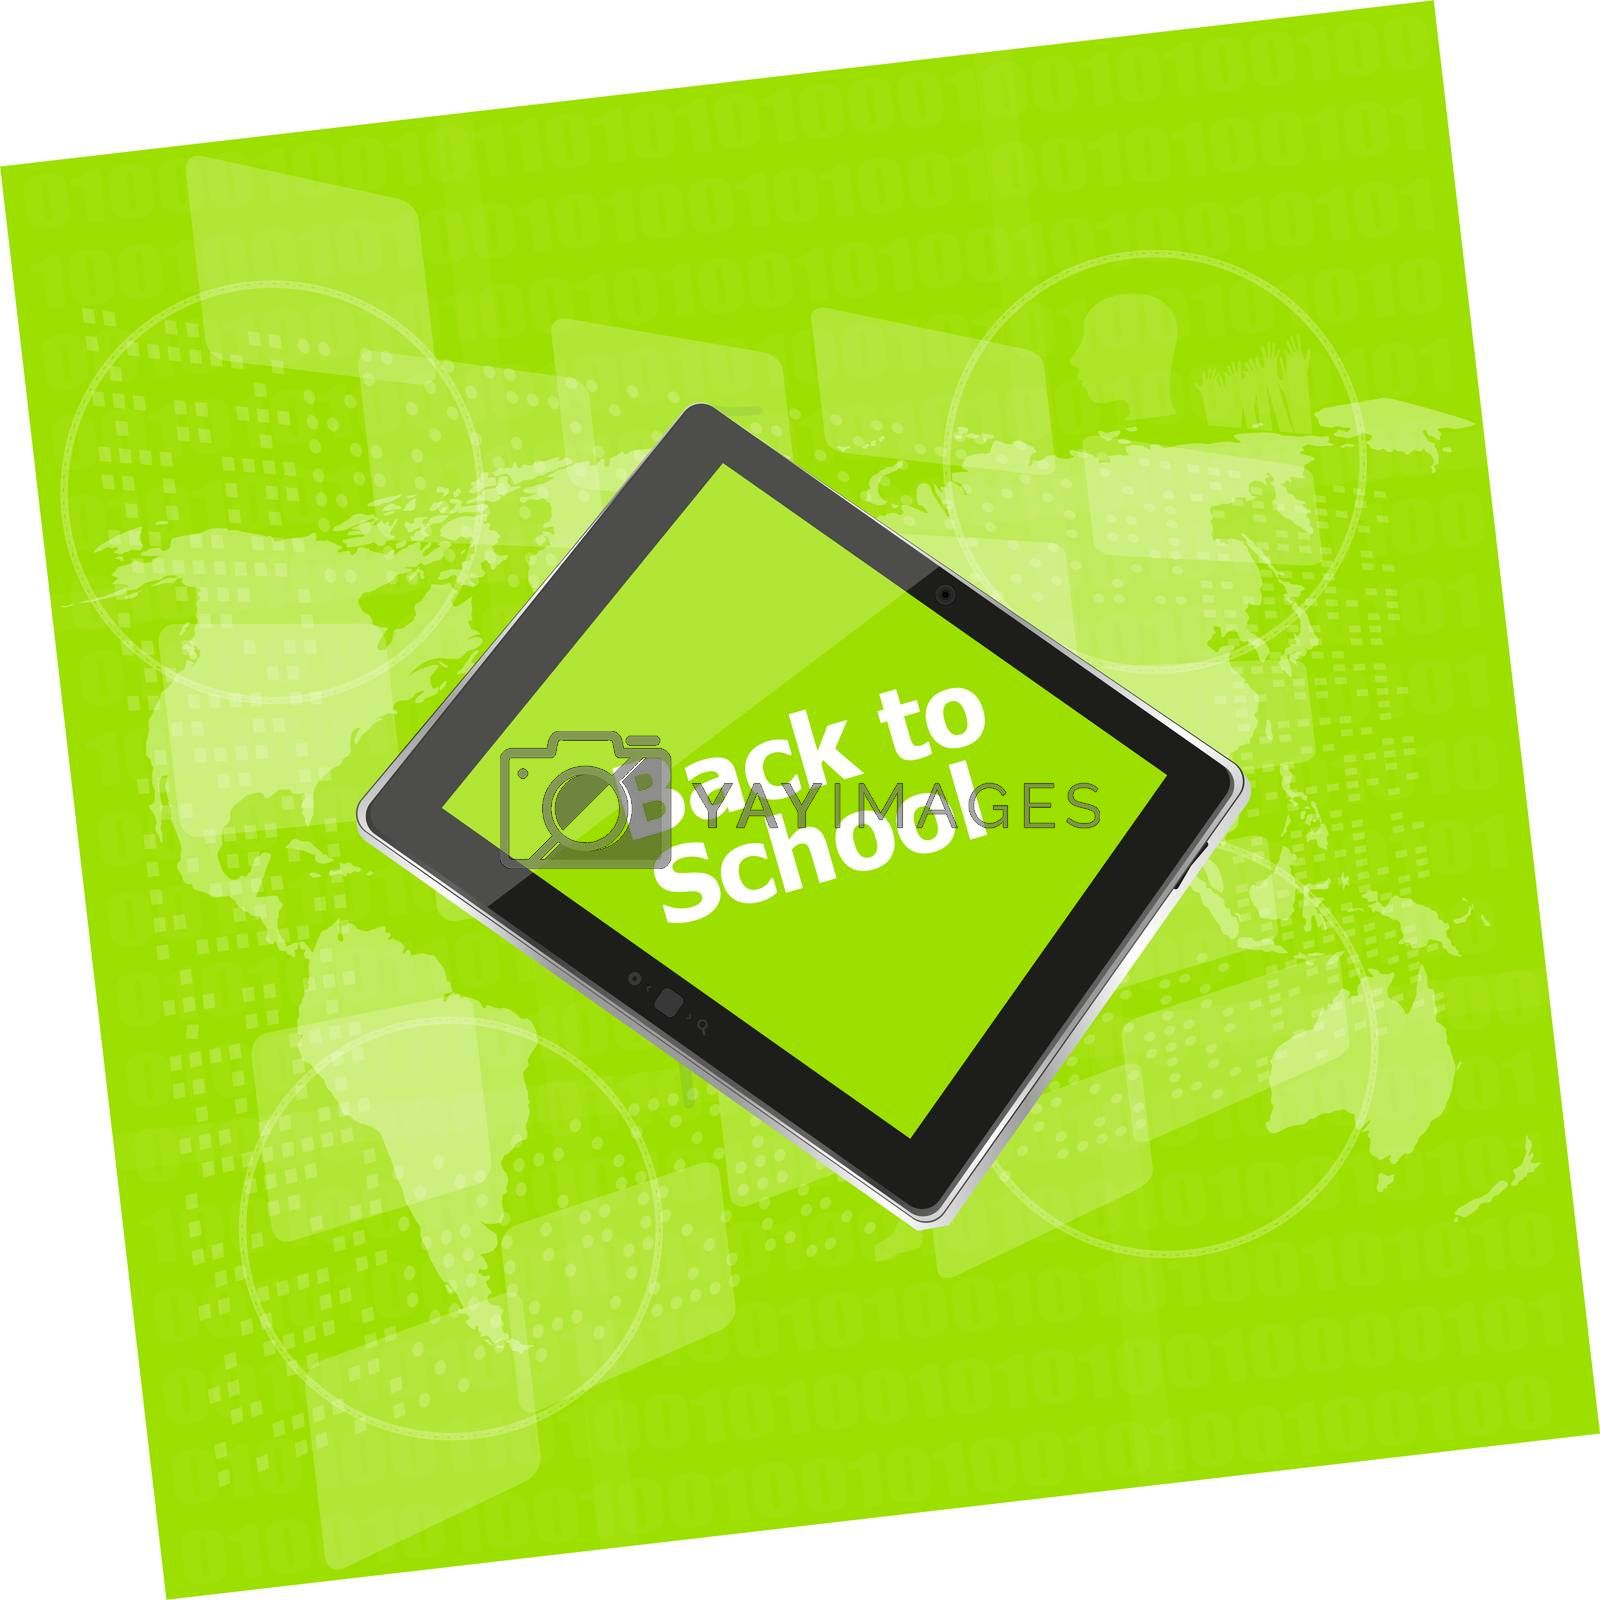 Tablet PC set with back to school word on it, isolated on white